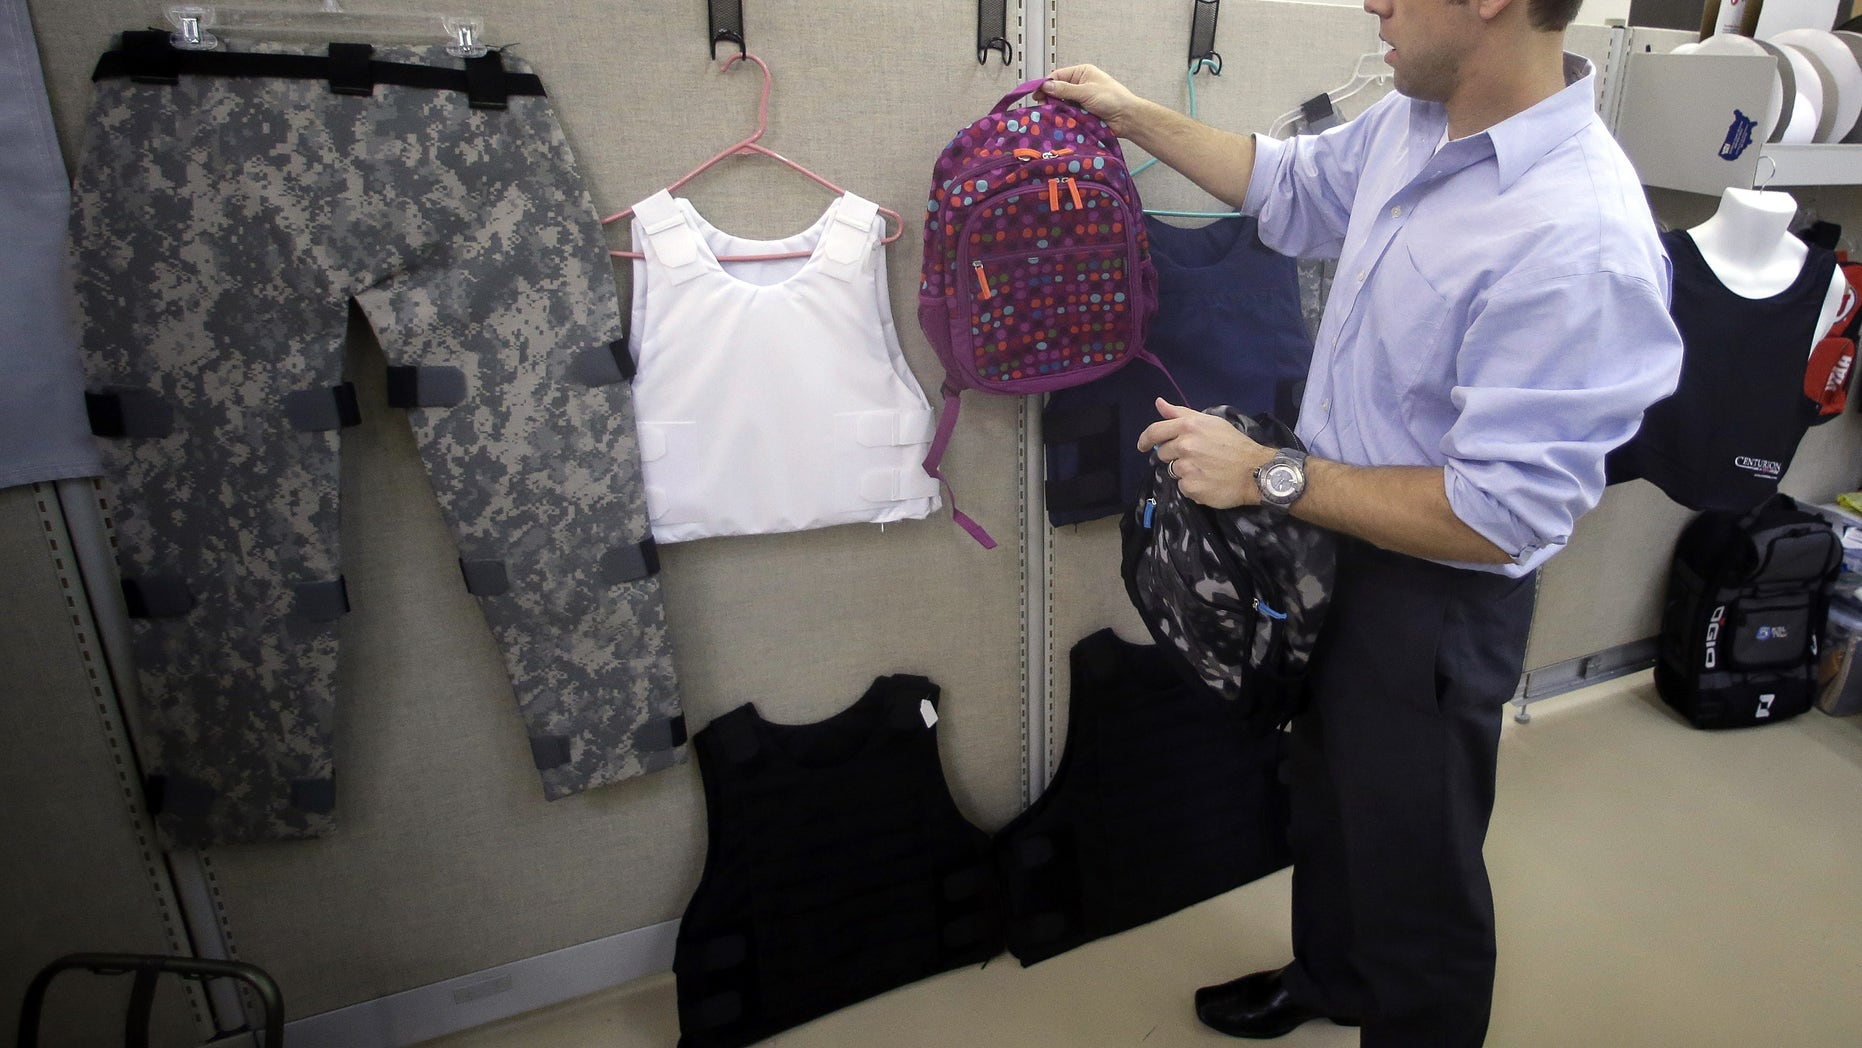 Dec. 19, 2012: Rick Brand, Chief Operating Officer of Amendment II, holds a children's backpack with anti-ballistic insert during at the company's manufacturing facility in Salt Lake City.